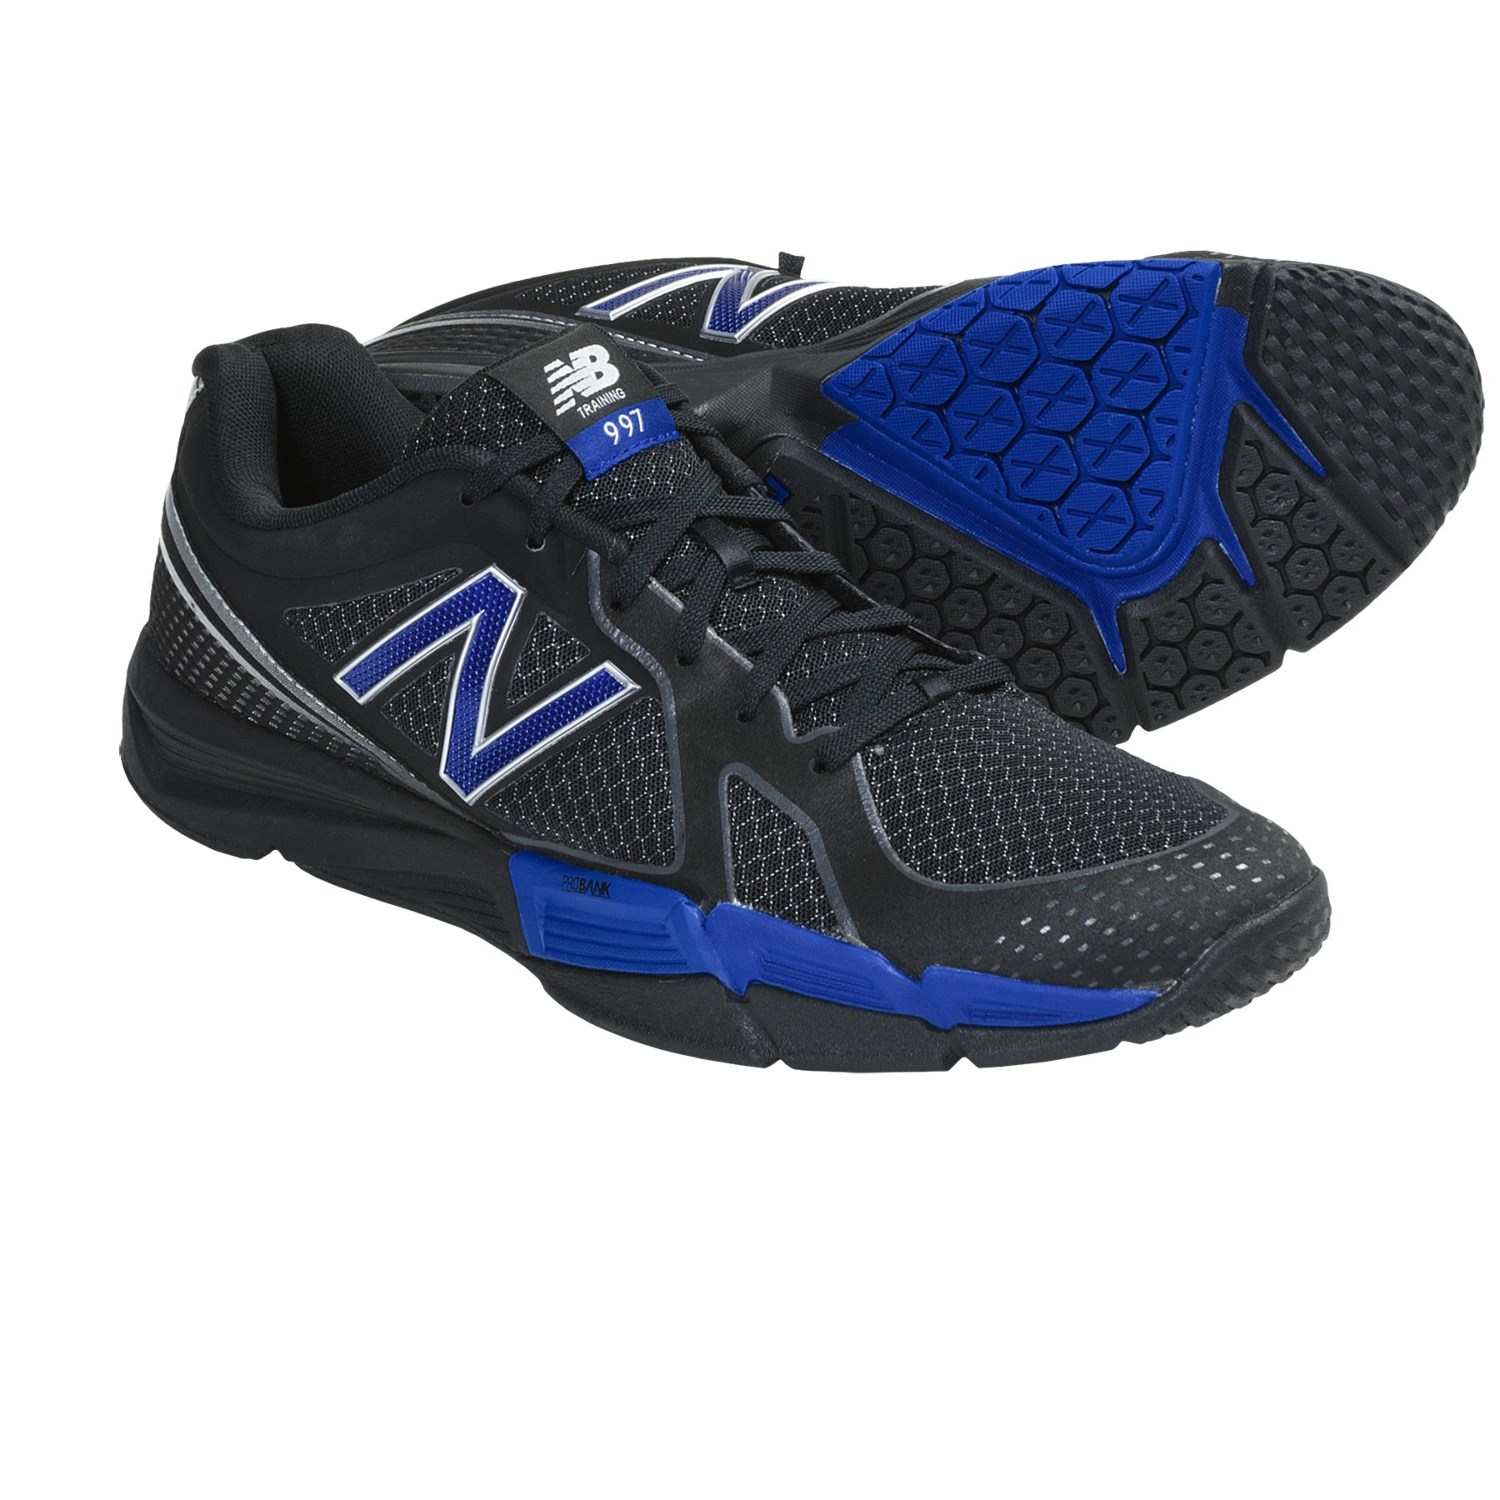 New Balance MX997 Cross Training Shoes (For Men) in Black/Blue